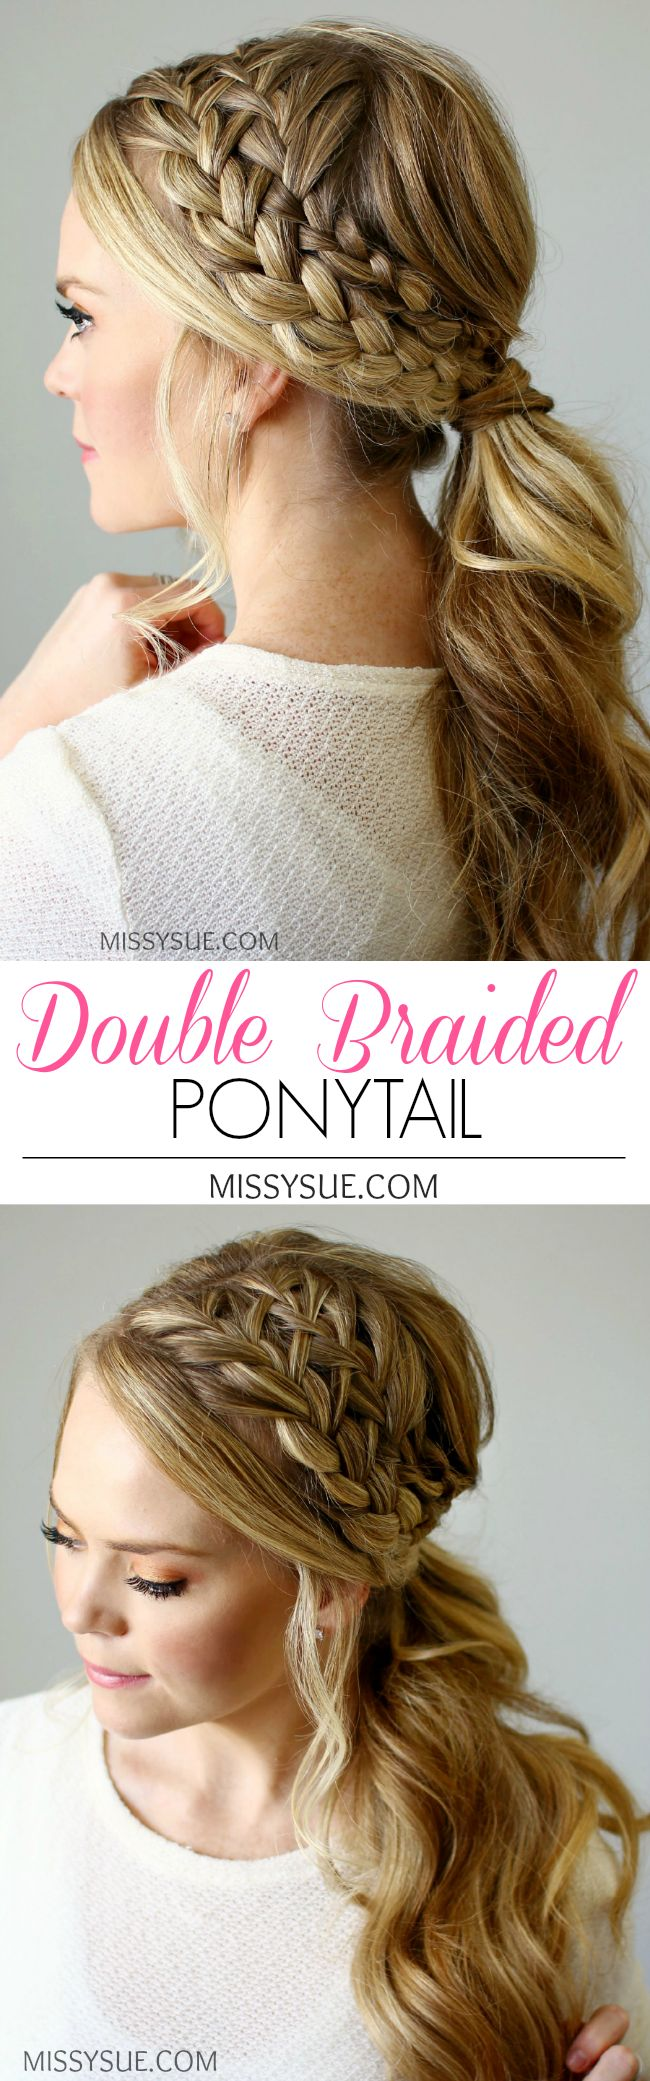 Double Braided Ponytail